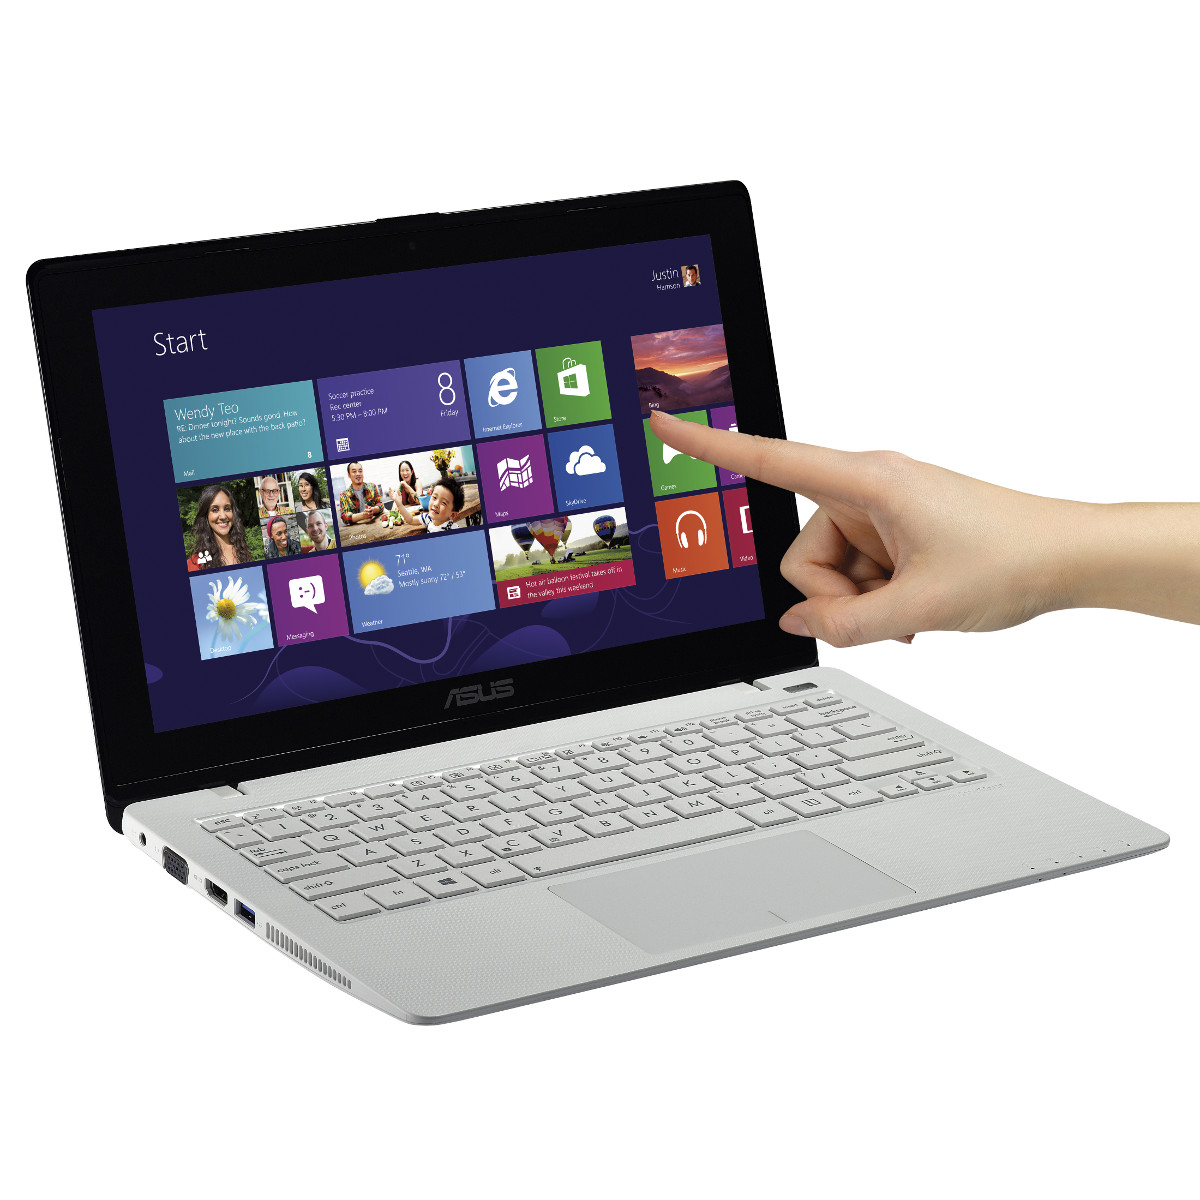 asus vivobook f200ma bing ct568b blanc pc portable asus. Black Bedroom Furniture Sets. Home Design Ideas